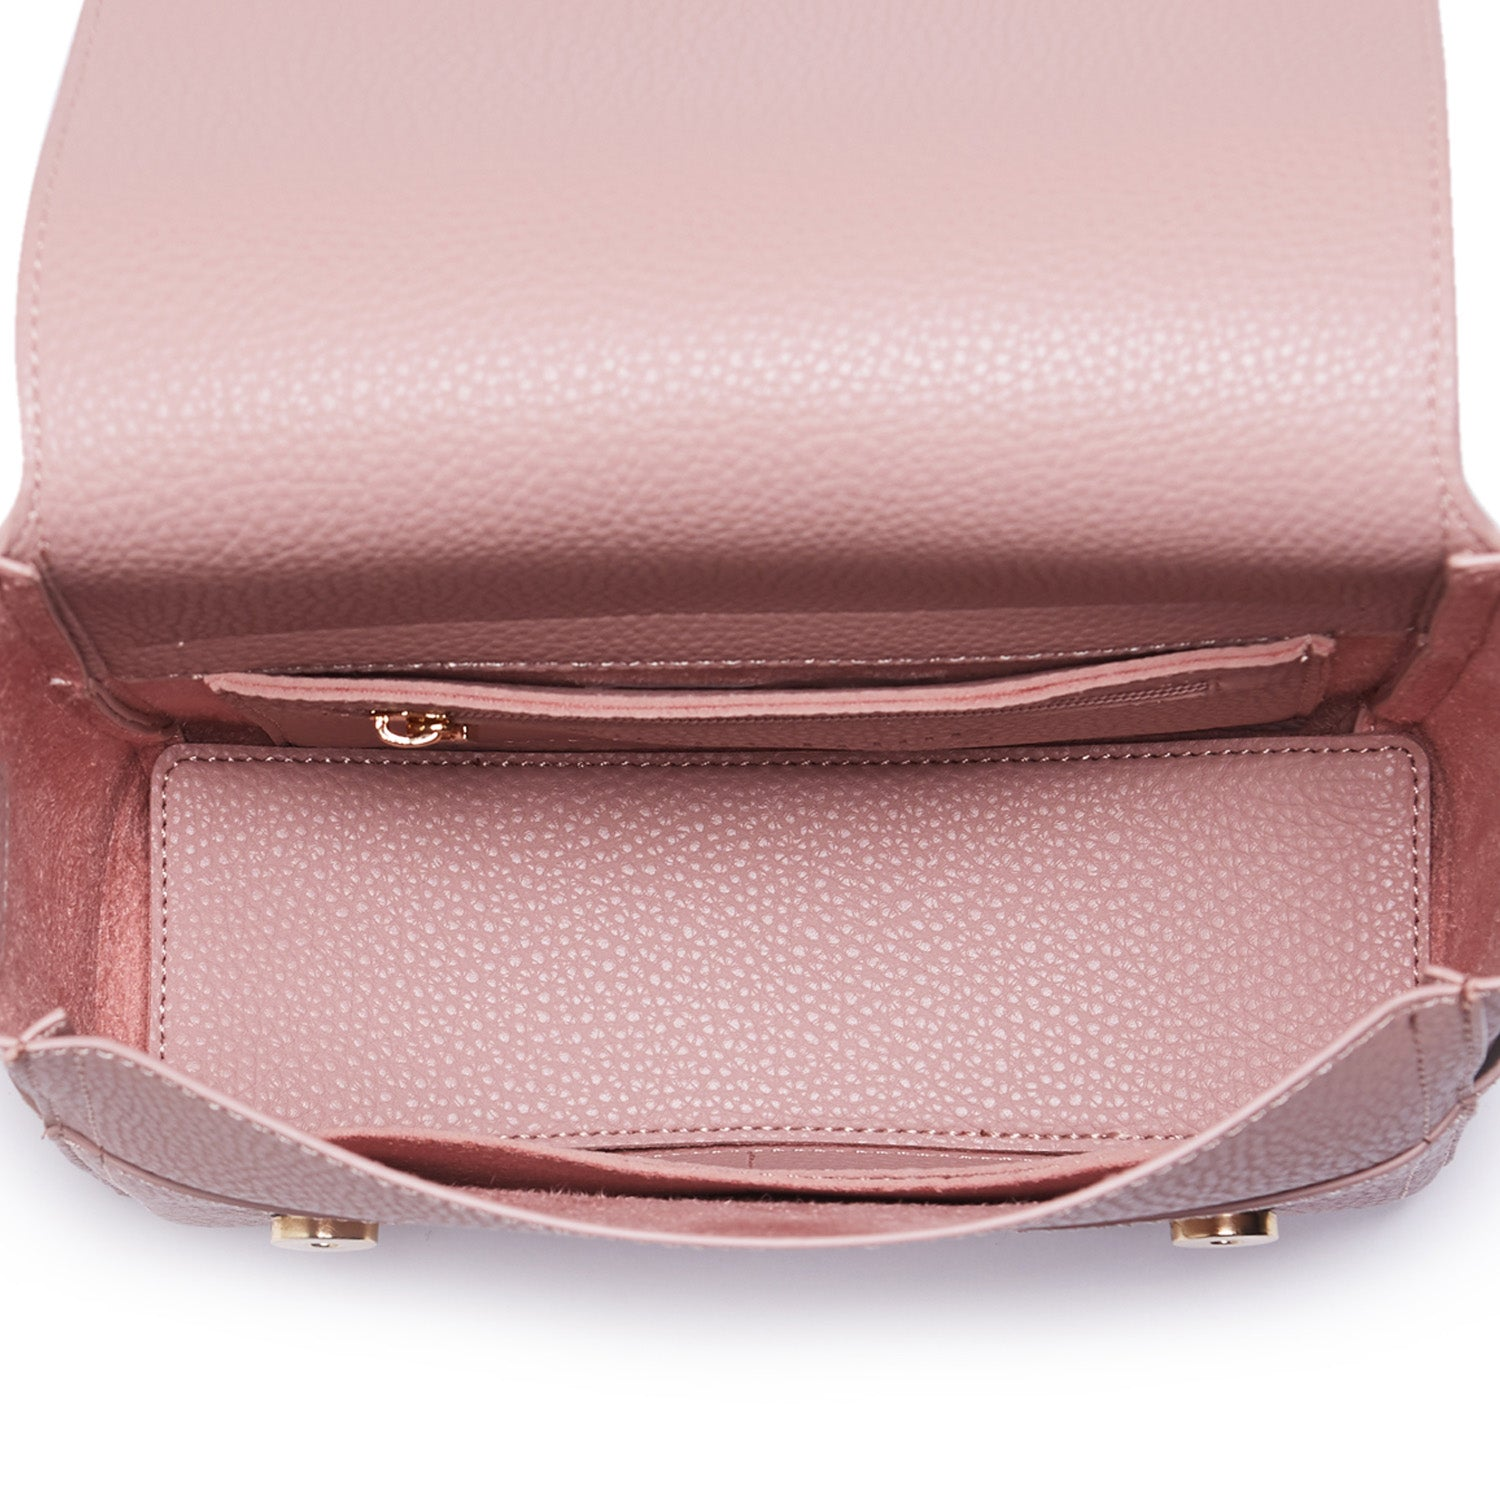 RIBAG MINI - NUDE PINK